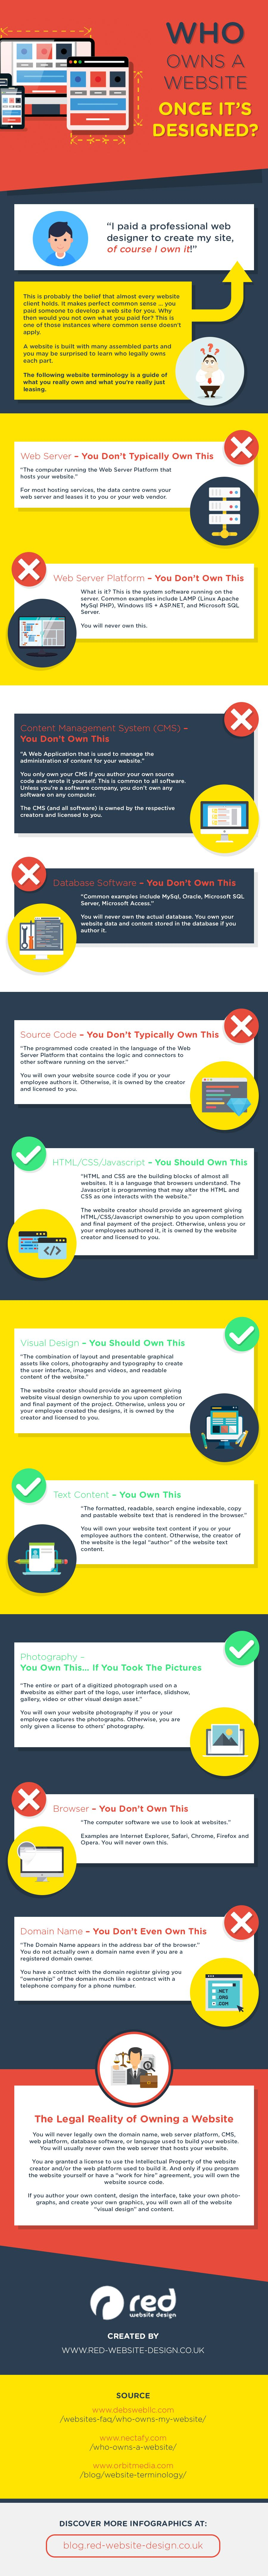 Who Owns a Website Once It's Designed? It Isn't You! (infographic)